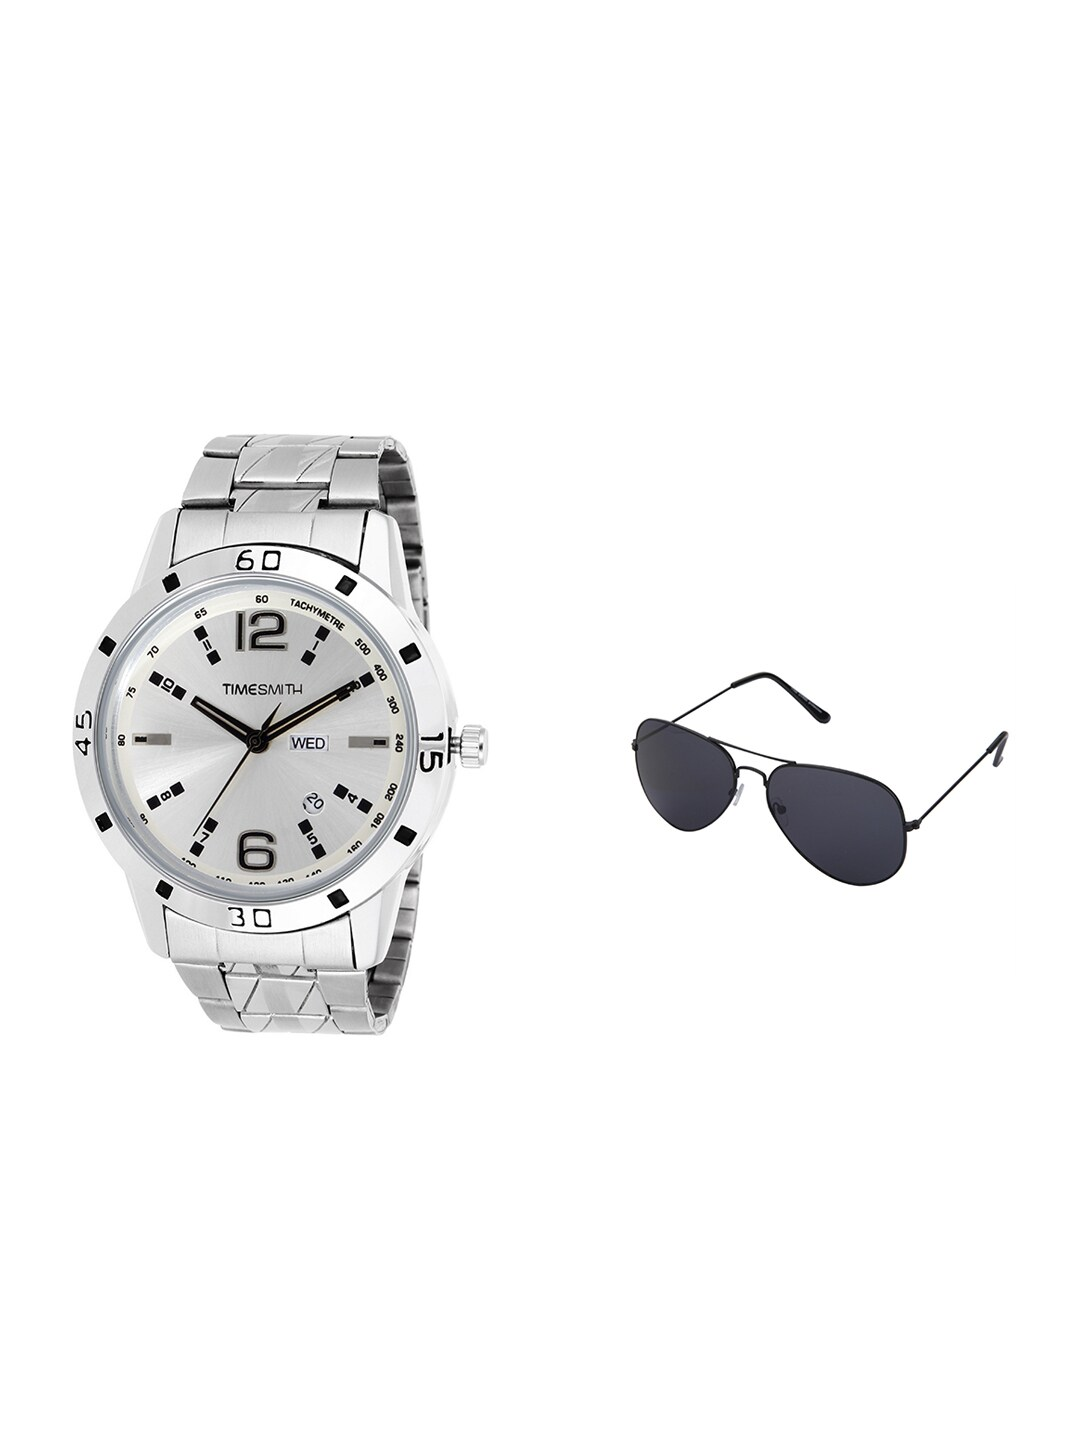 9b4ad05f11f Pair Watches - Buy Couple Watches Online in India - Myntra